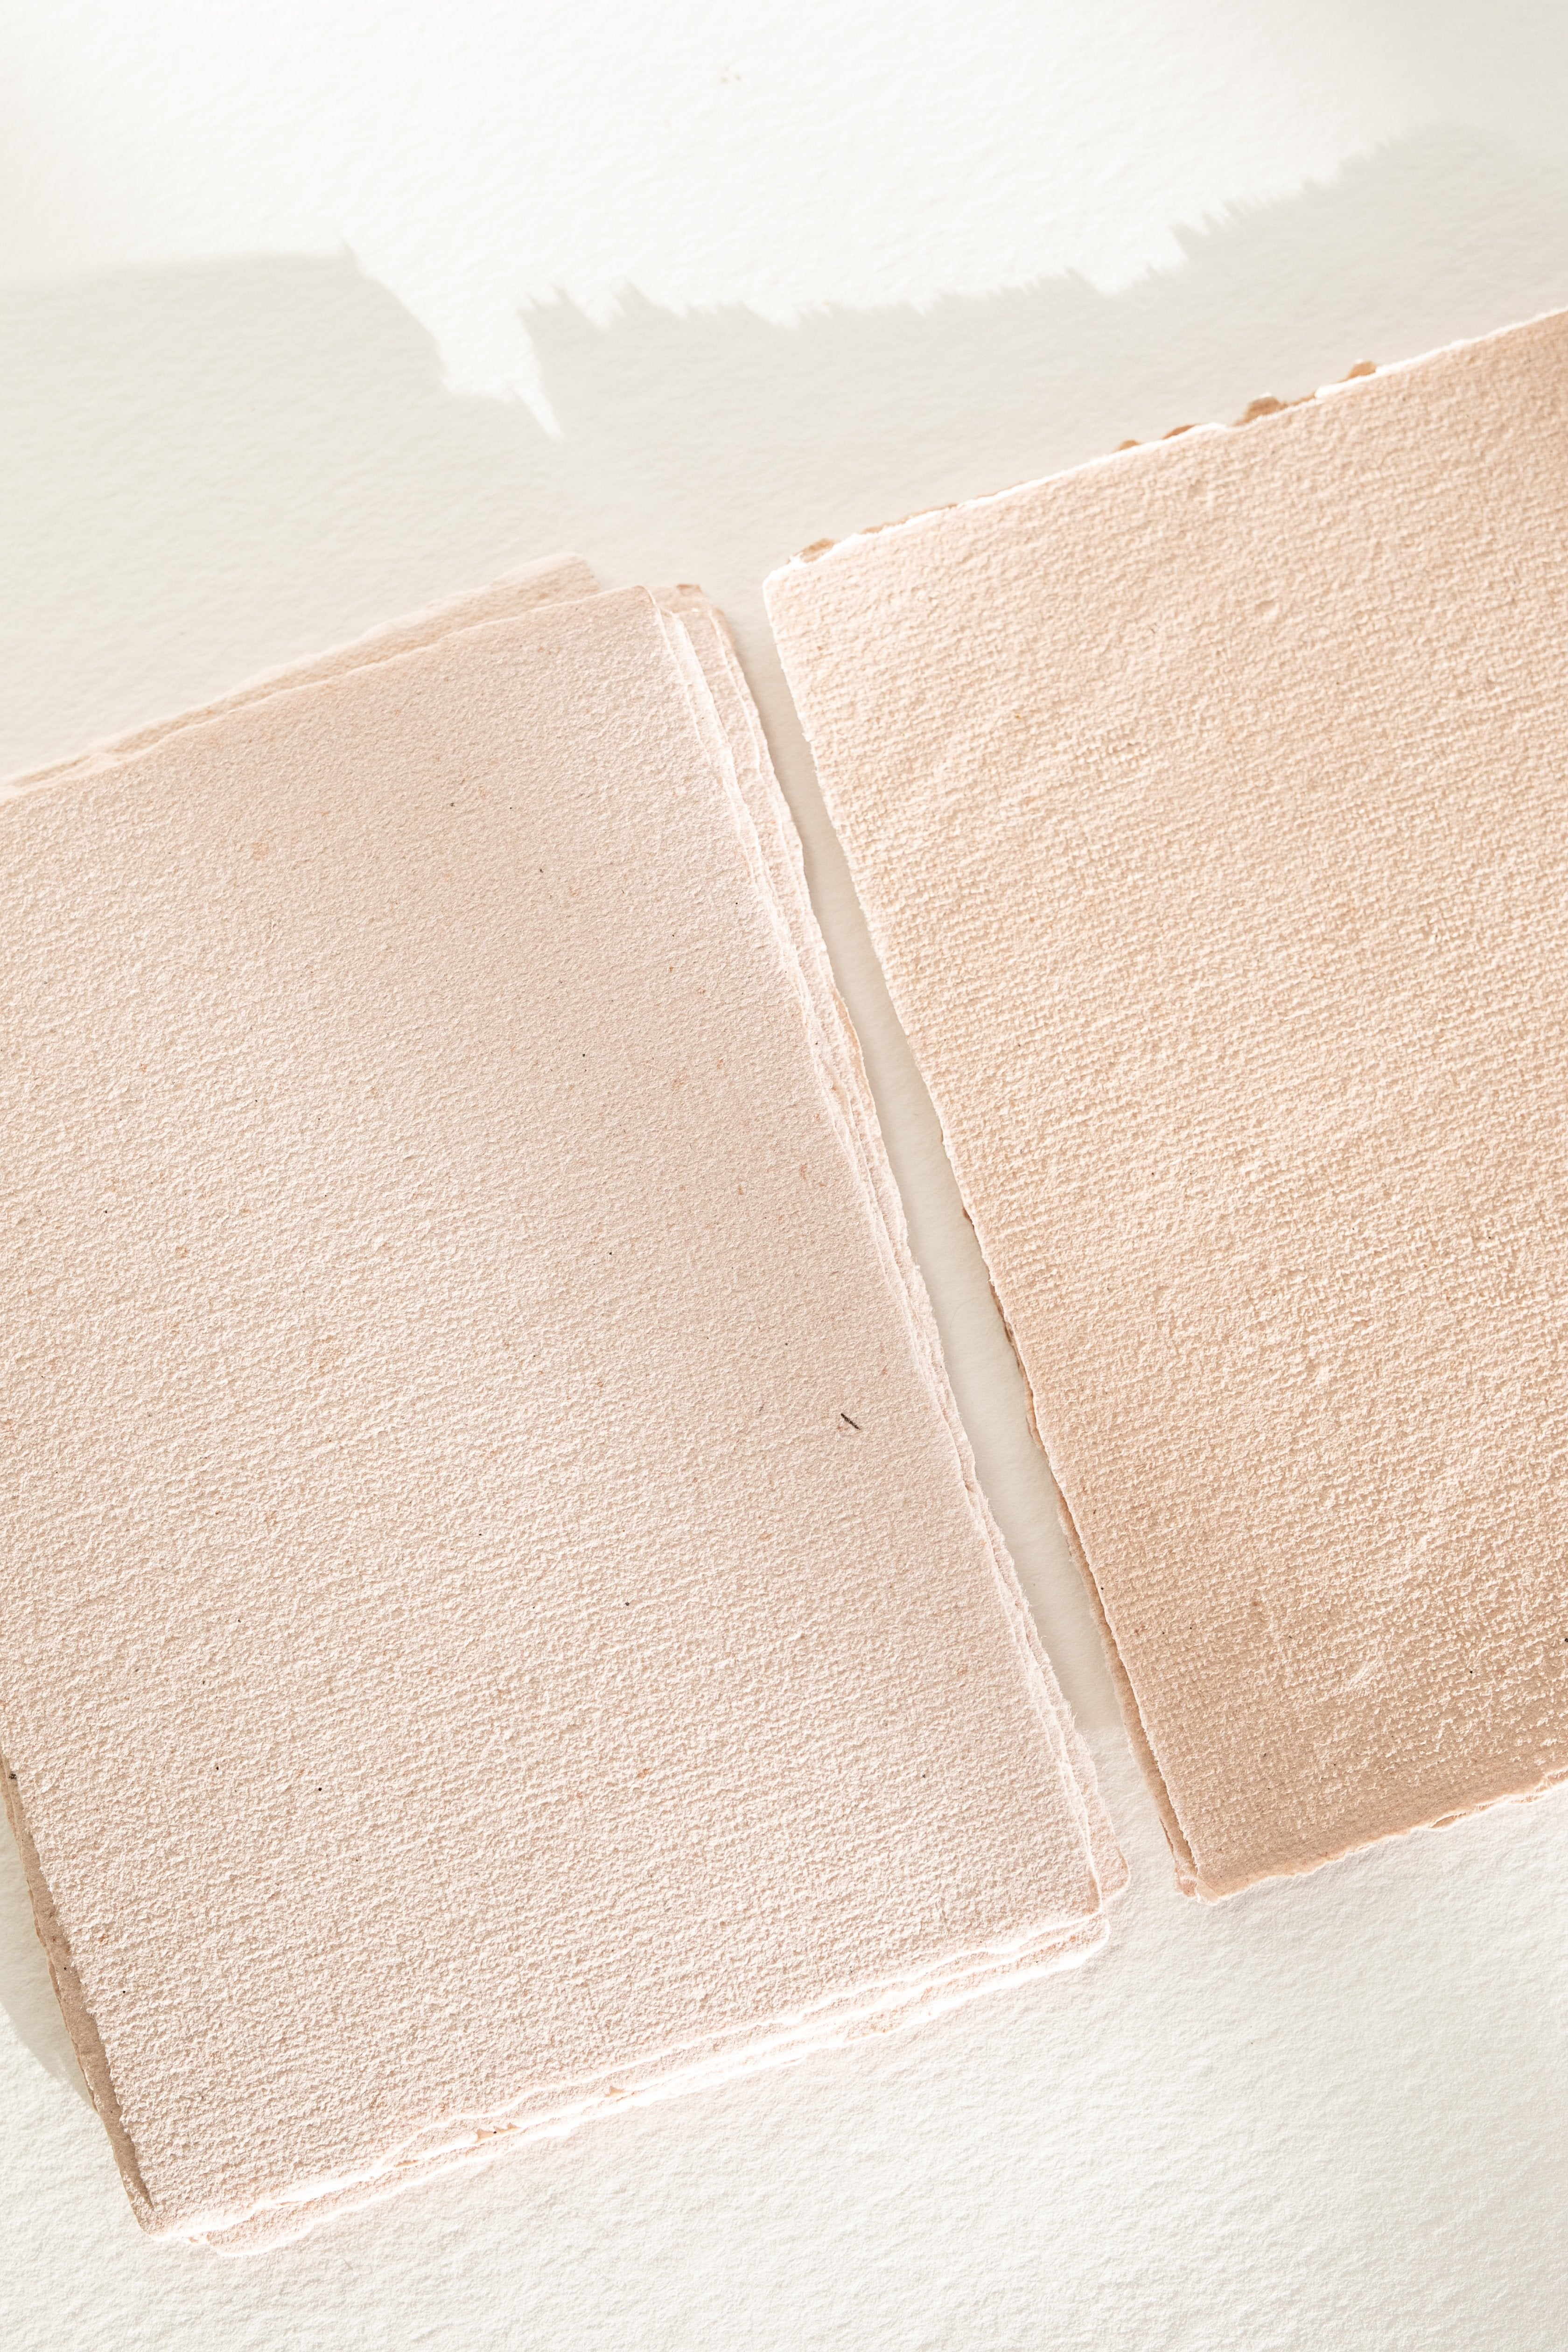 Blush handmade recycled paper